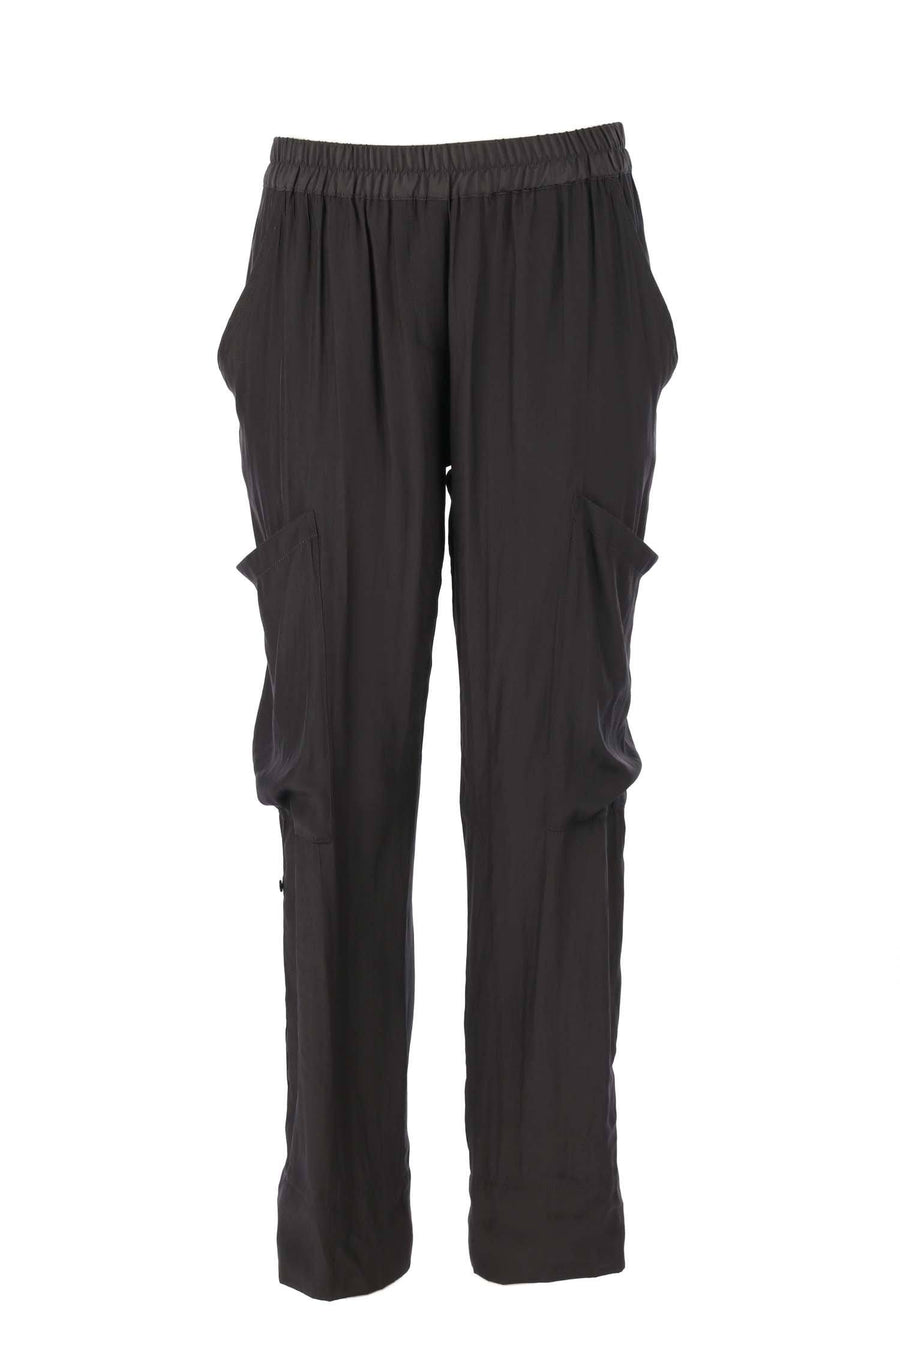 Shop Online Soft Cargo in Graphite by Mela Purdie  Frockaholics Bottoms